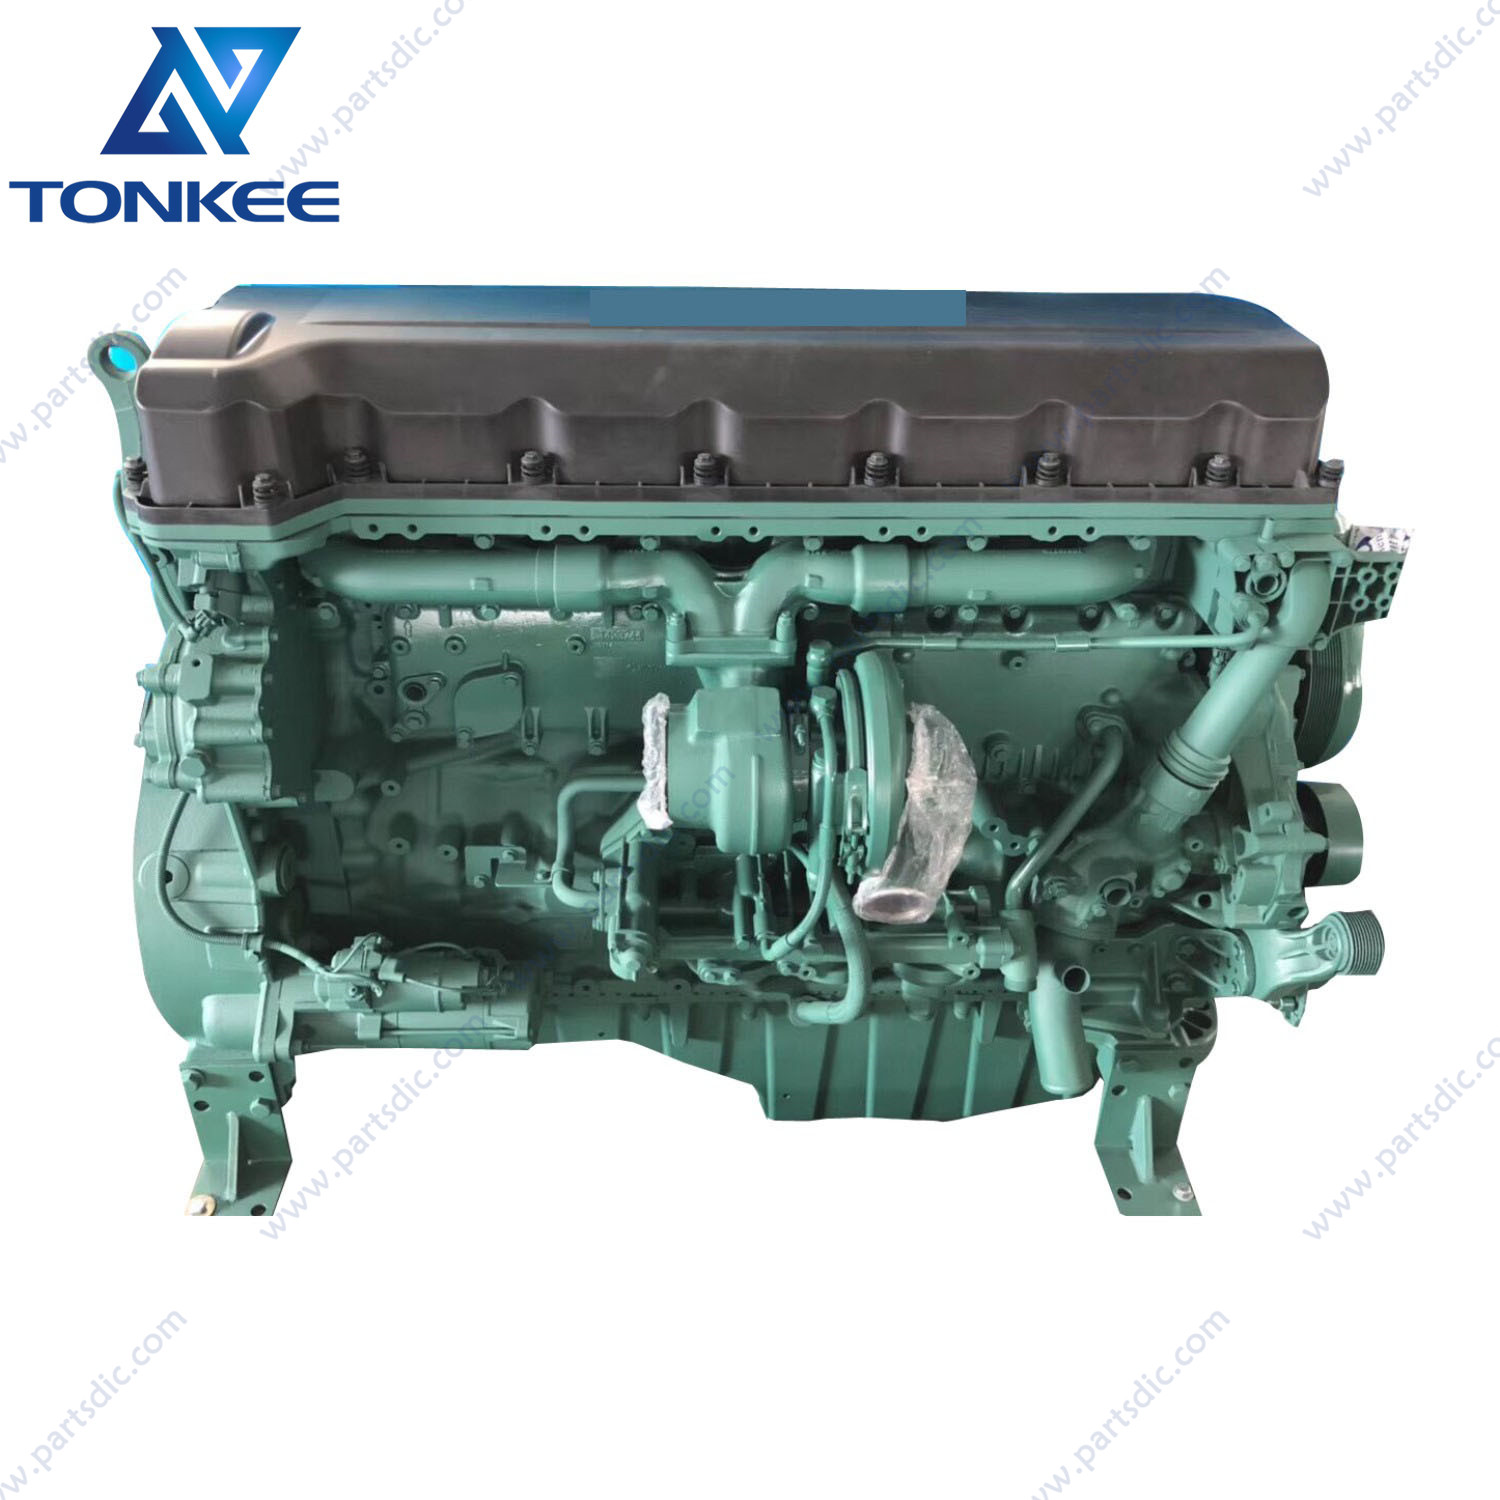 original EC380D EC480D excavator diesel engine suitable D13 D13A D13F VCE 15185572 17456232 SD130A complete diesel engine assy for VOLVO